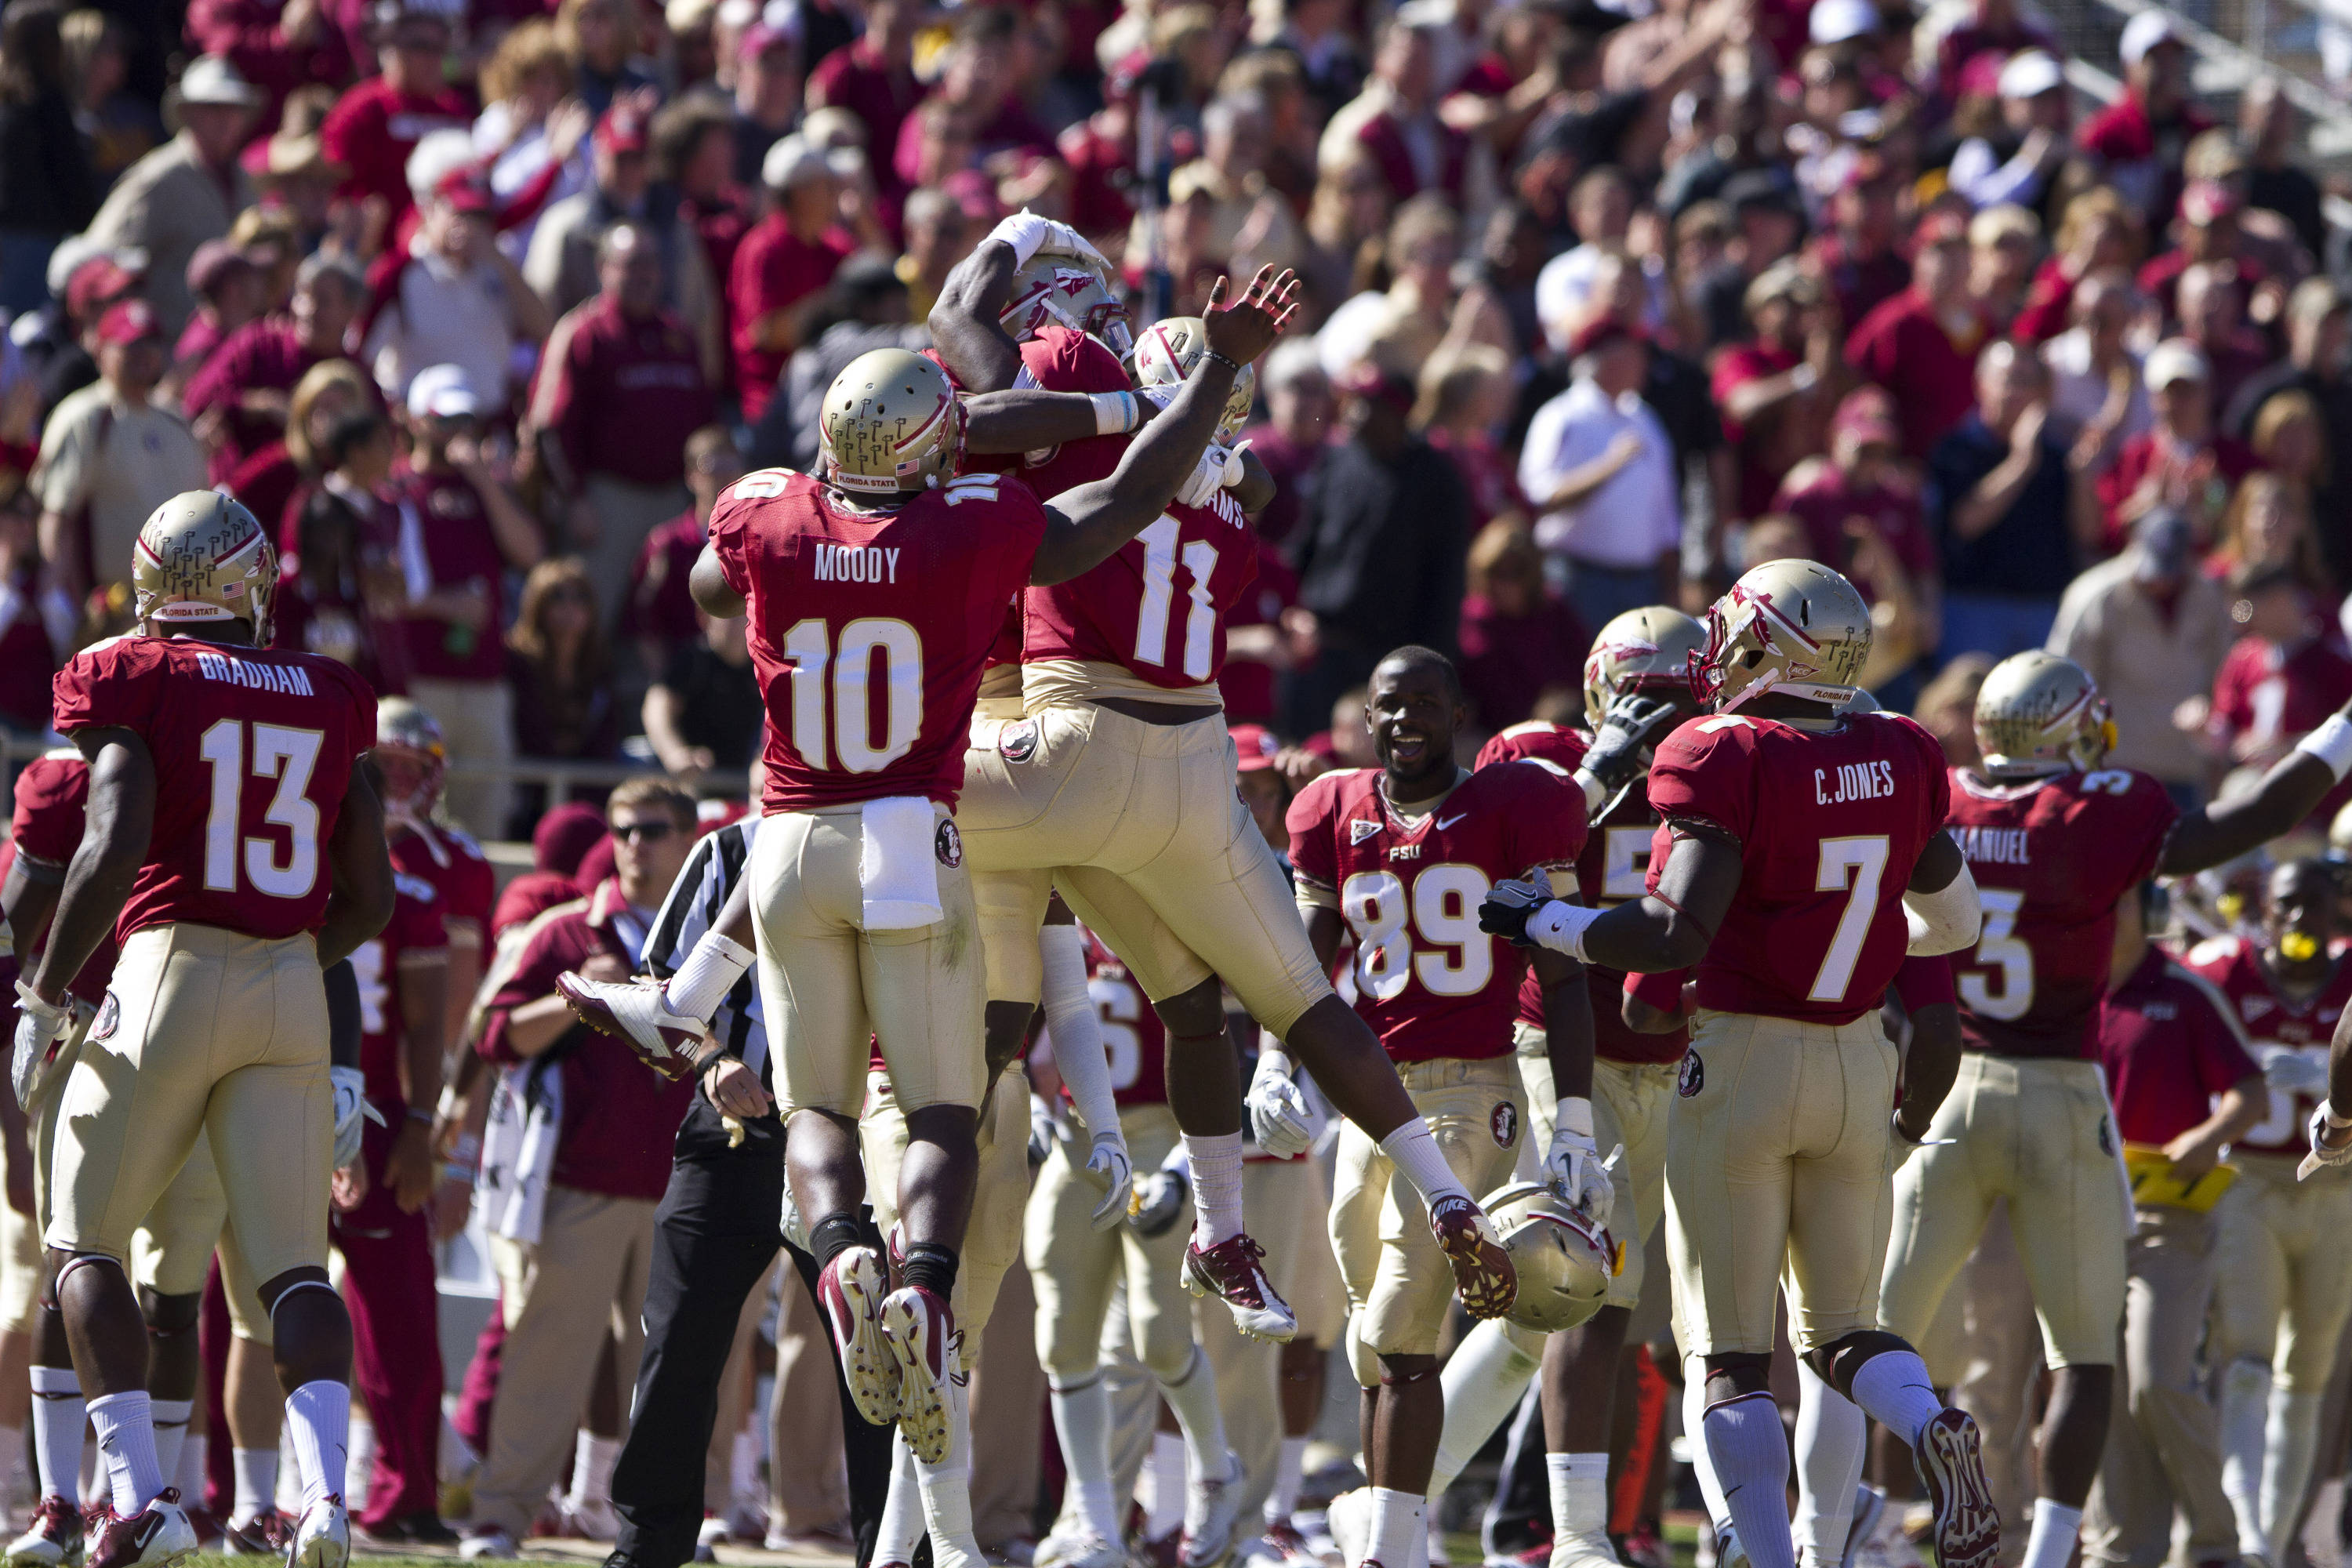 FSU players celebrate after a touchdown during the football game against NC State on October 29, 2011.